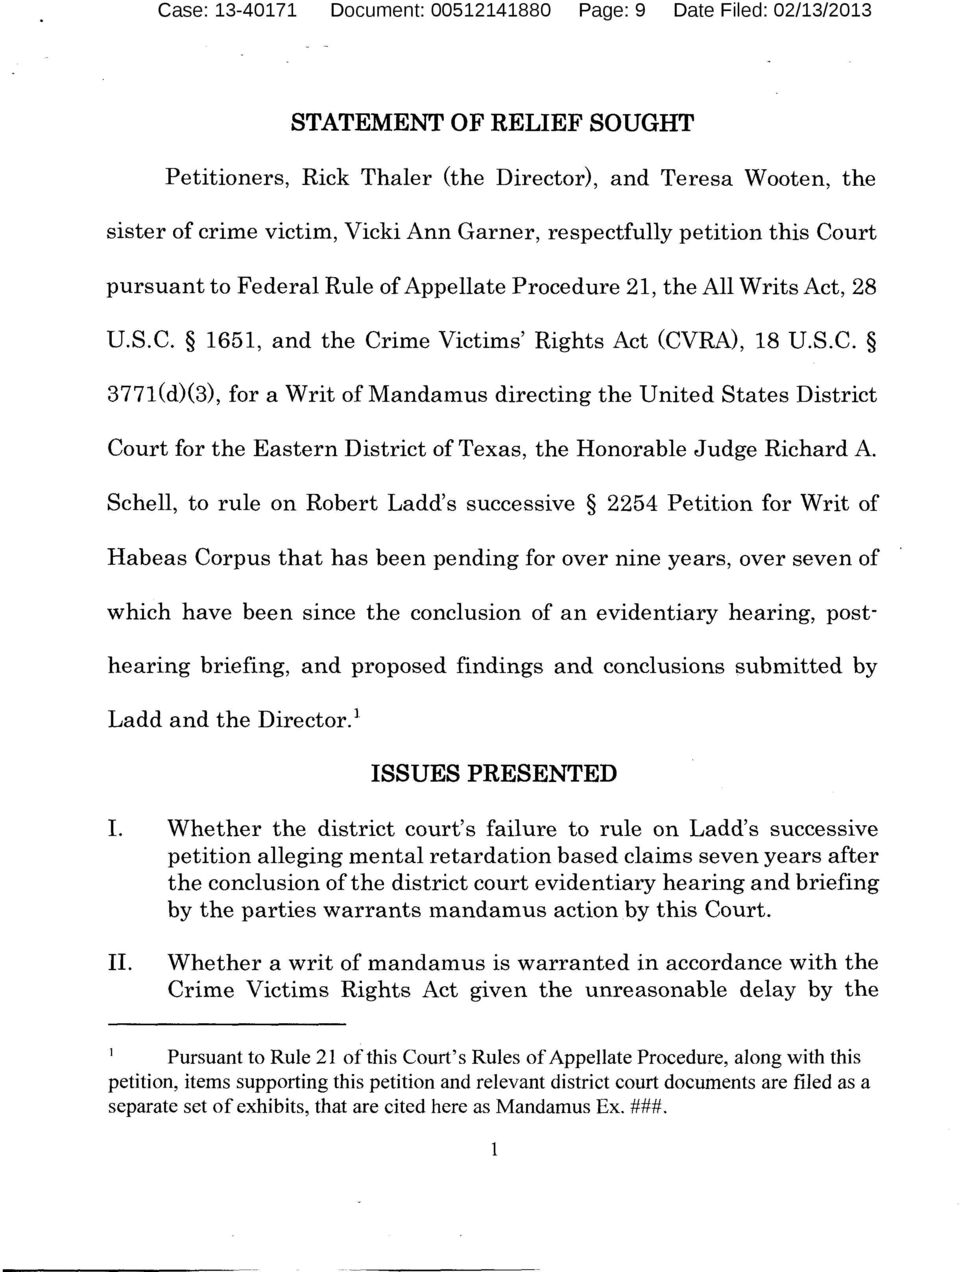 Schell, to rule on Robert Ladd's successive 2254 Petition for Writ of Habeas Corpus that has been pending for over nine years, over seven of which have been since the conclusion of an evidentiary